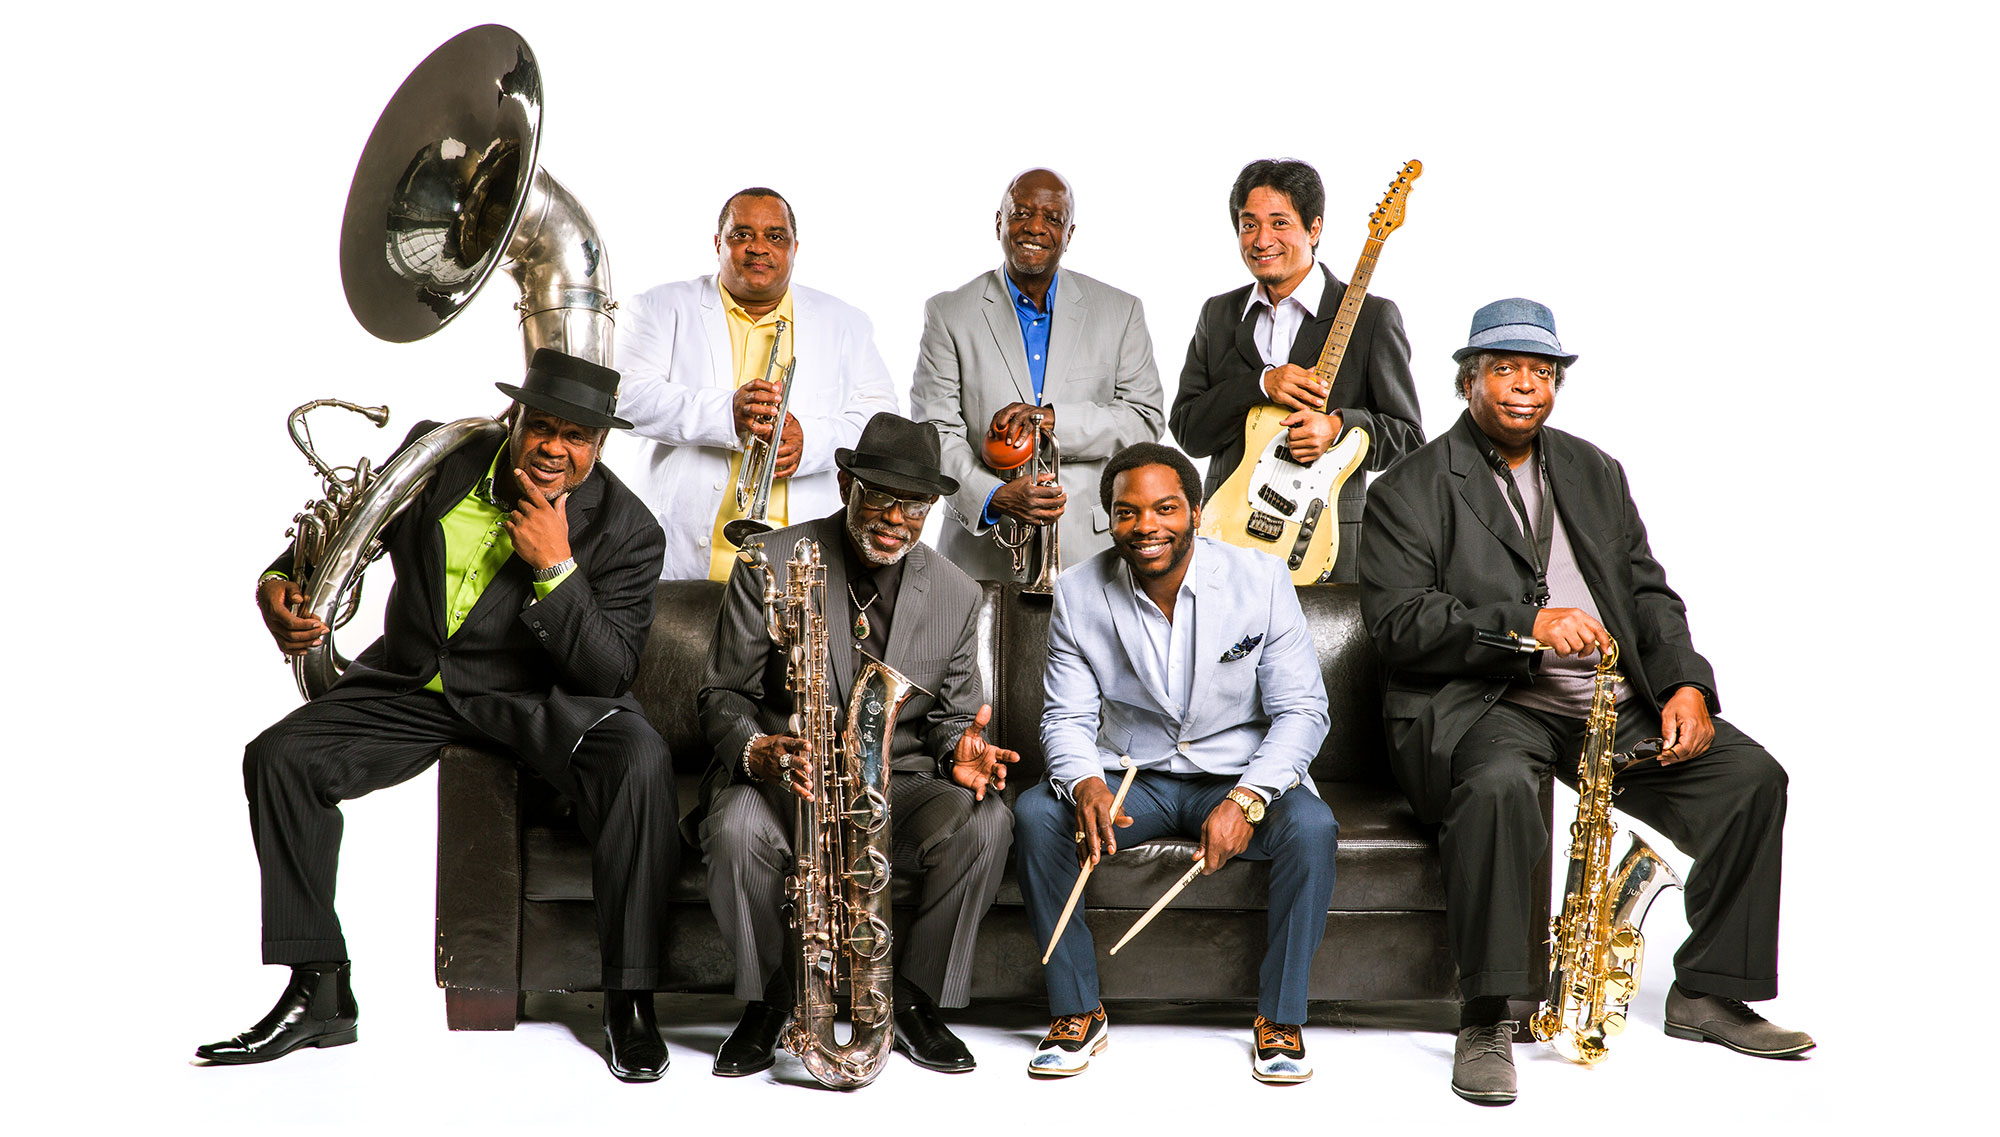 DIRTY DOZEN BRASS BAND  <h6>w/ Fat City Band  </h6><H5>February 25</h5>